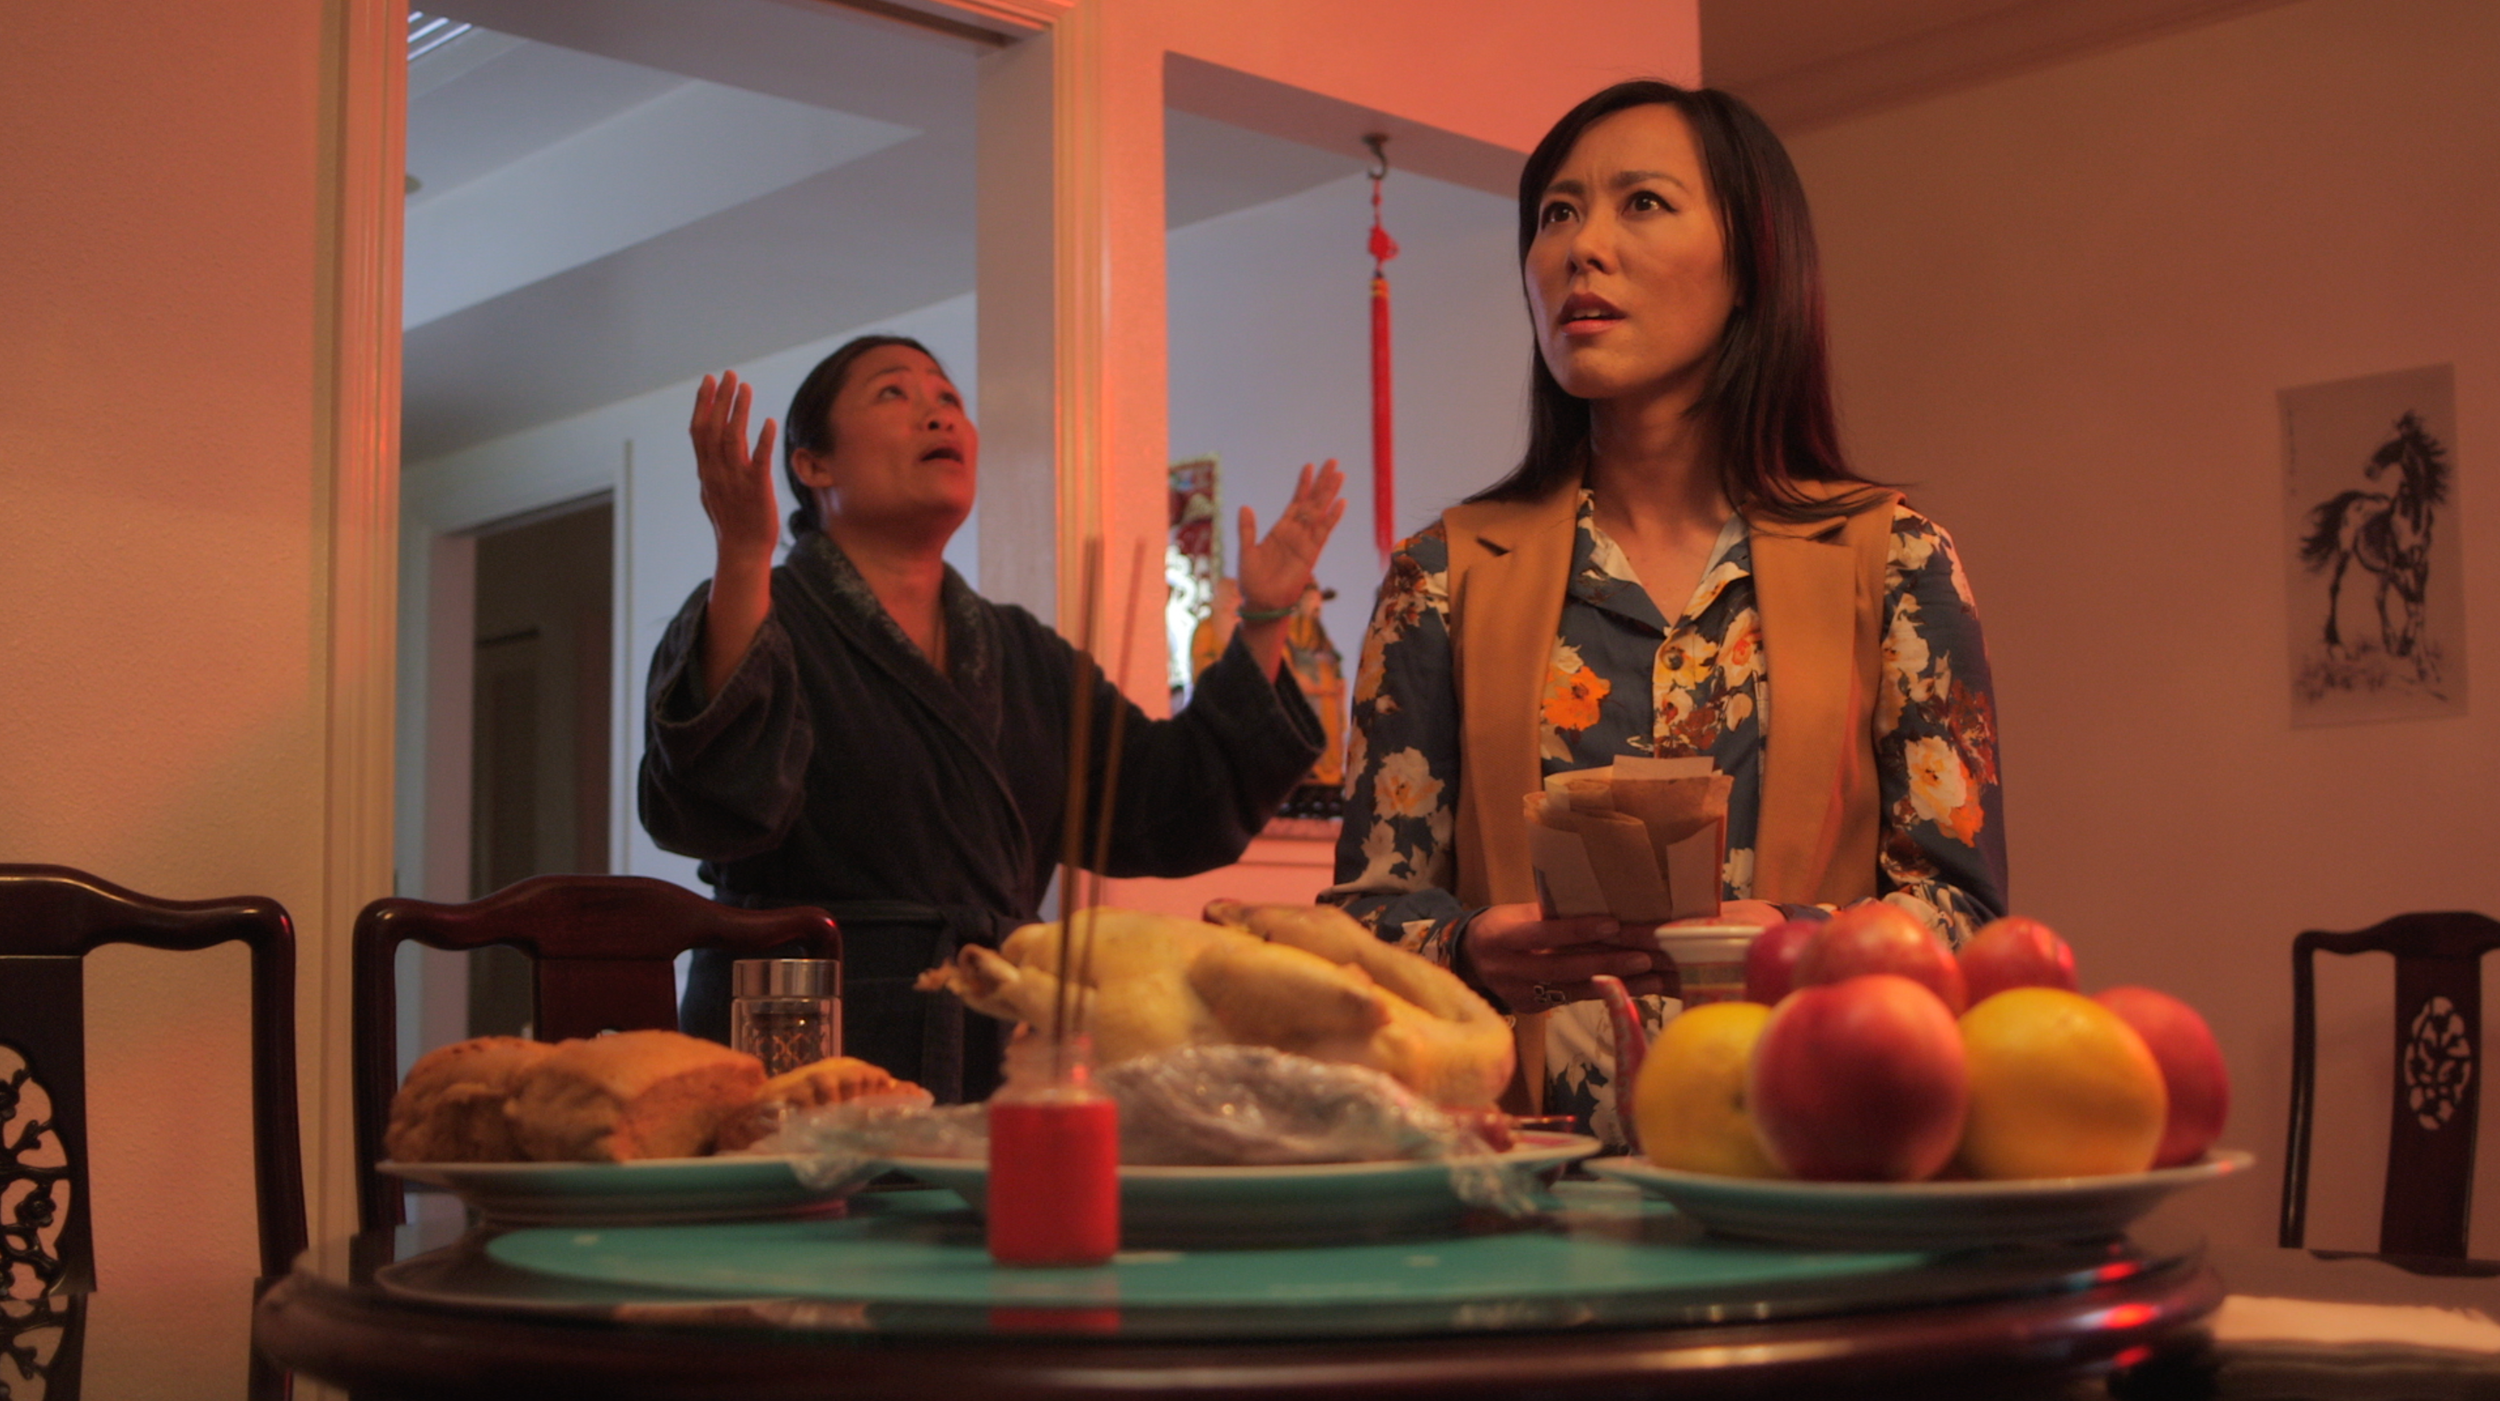 """Neither here Nor There - Written by Janene Lin and directed by Kate Montgomery, the comedy """"Neither Here Nor There"""" follows a first-generation Chinese American woman as she tries to reconcile the traditions of the past with the ideals of the present while winning a condom account for her ad agency. Currently on the festival circuit, NHNT has been chosen for BBC Writer's Room, and as an official selection at Webfest Berlin, Seattle Webfest, ITVfest, Seoul Webfest, London Int'l Motion Picture Awards and Windy City Film Festival."""